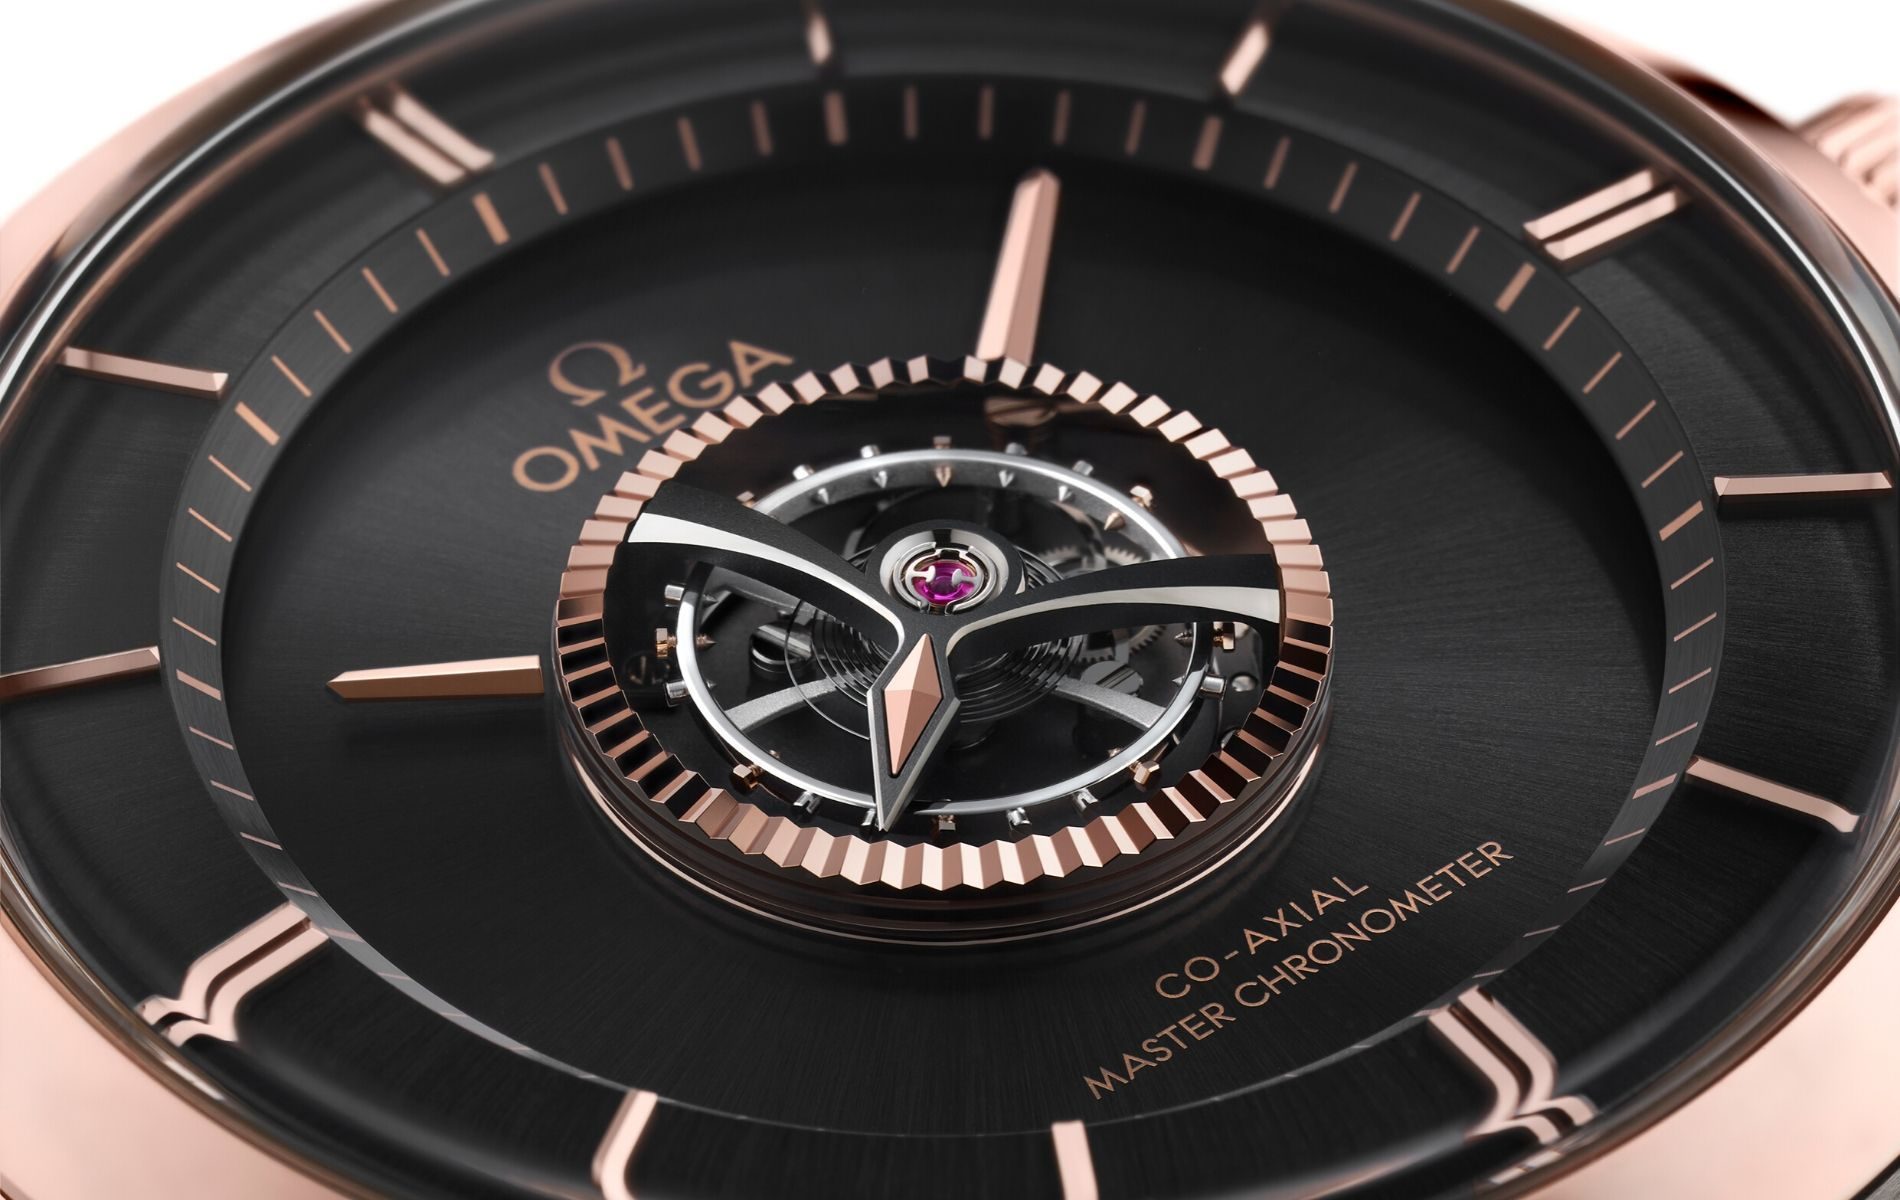 Omega Introduces A Manual Master Chronometer Watch With A Tourbillon